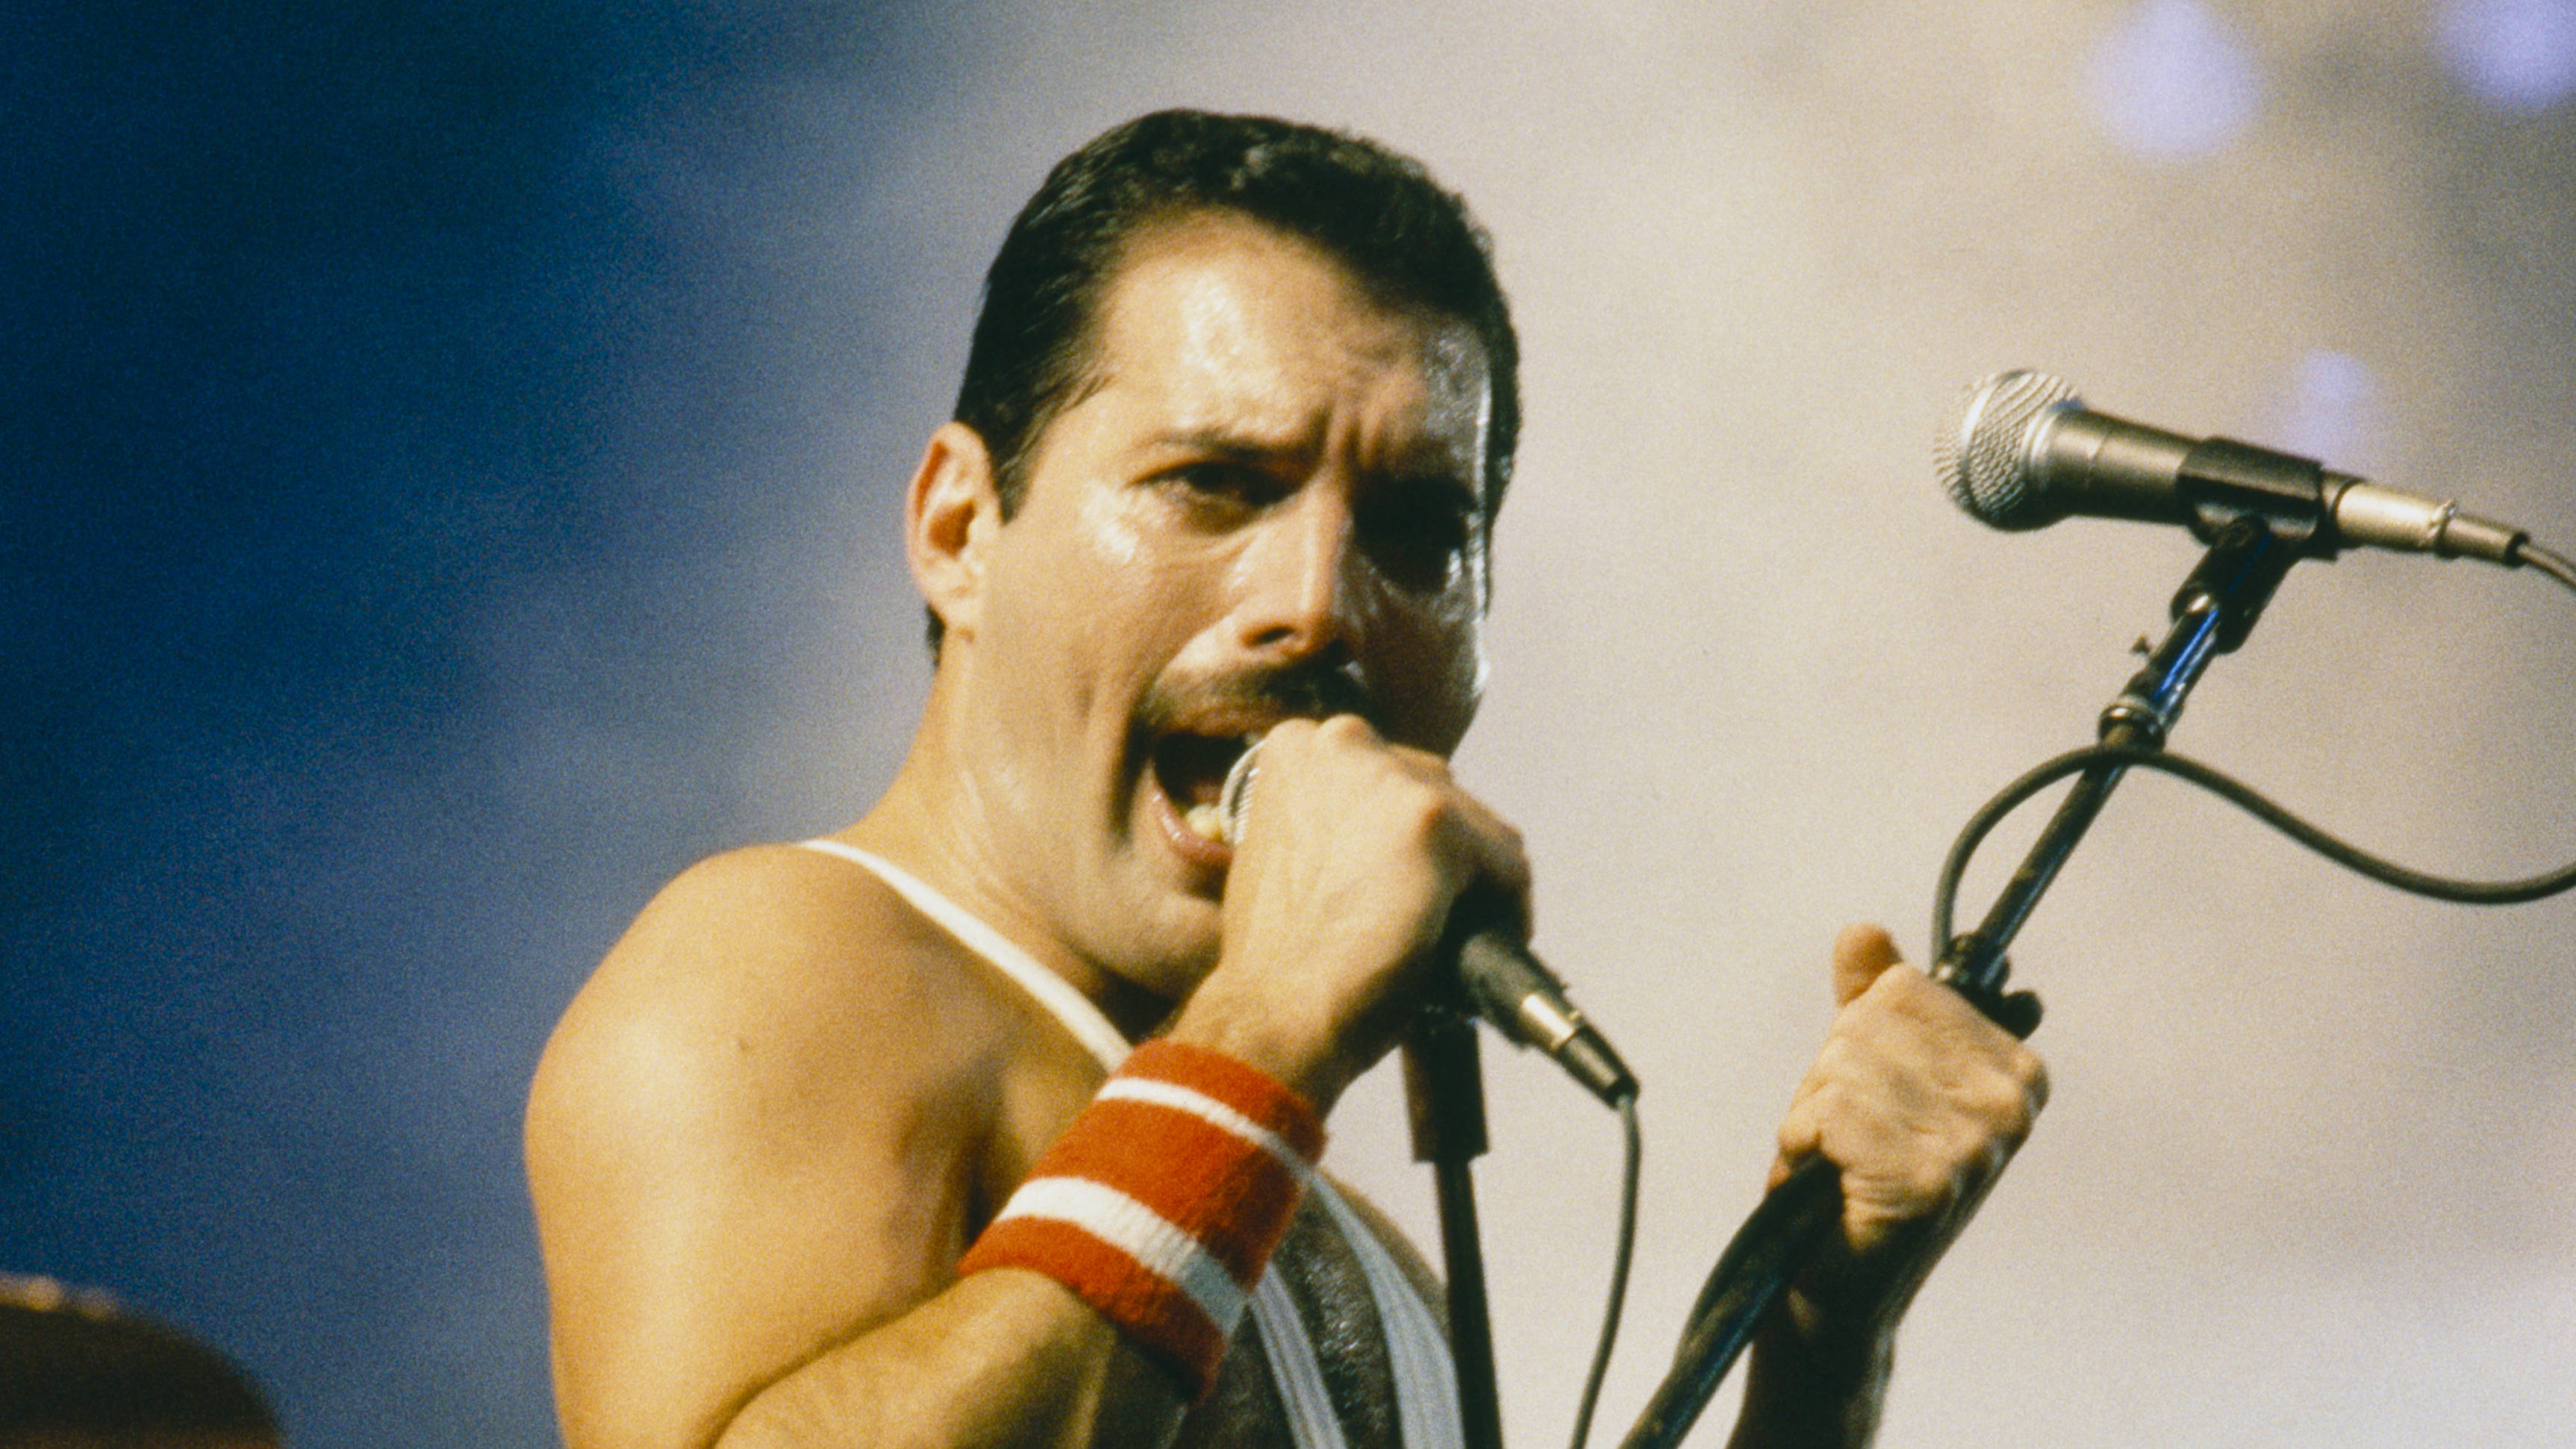 10 fascinating facts about Queen legend Freddie Mercury - Smooth